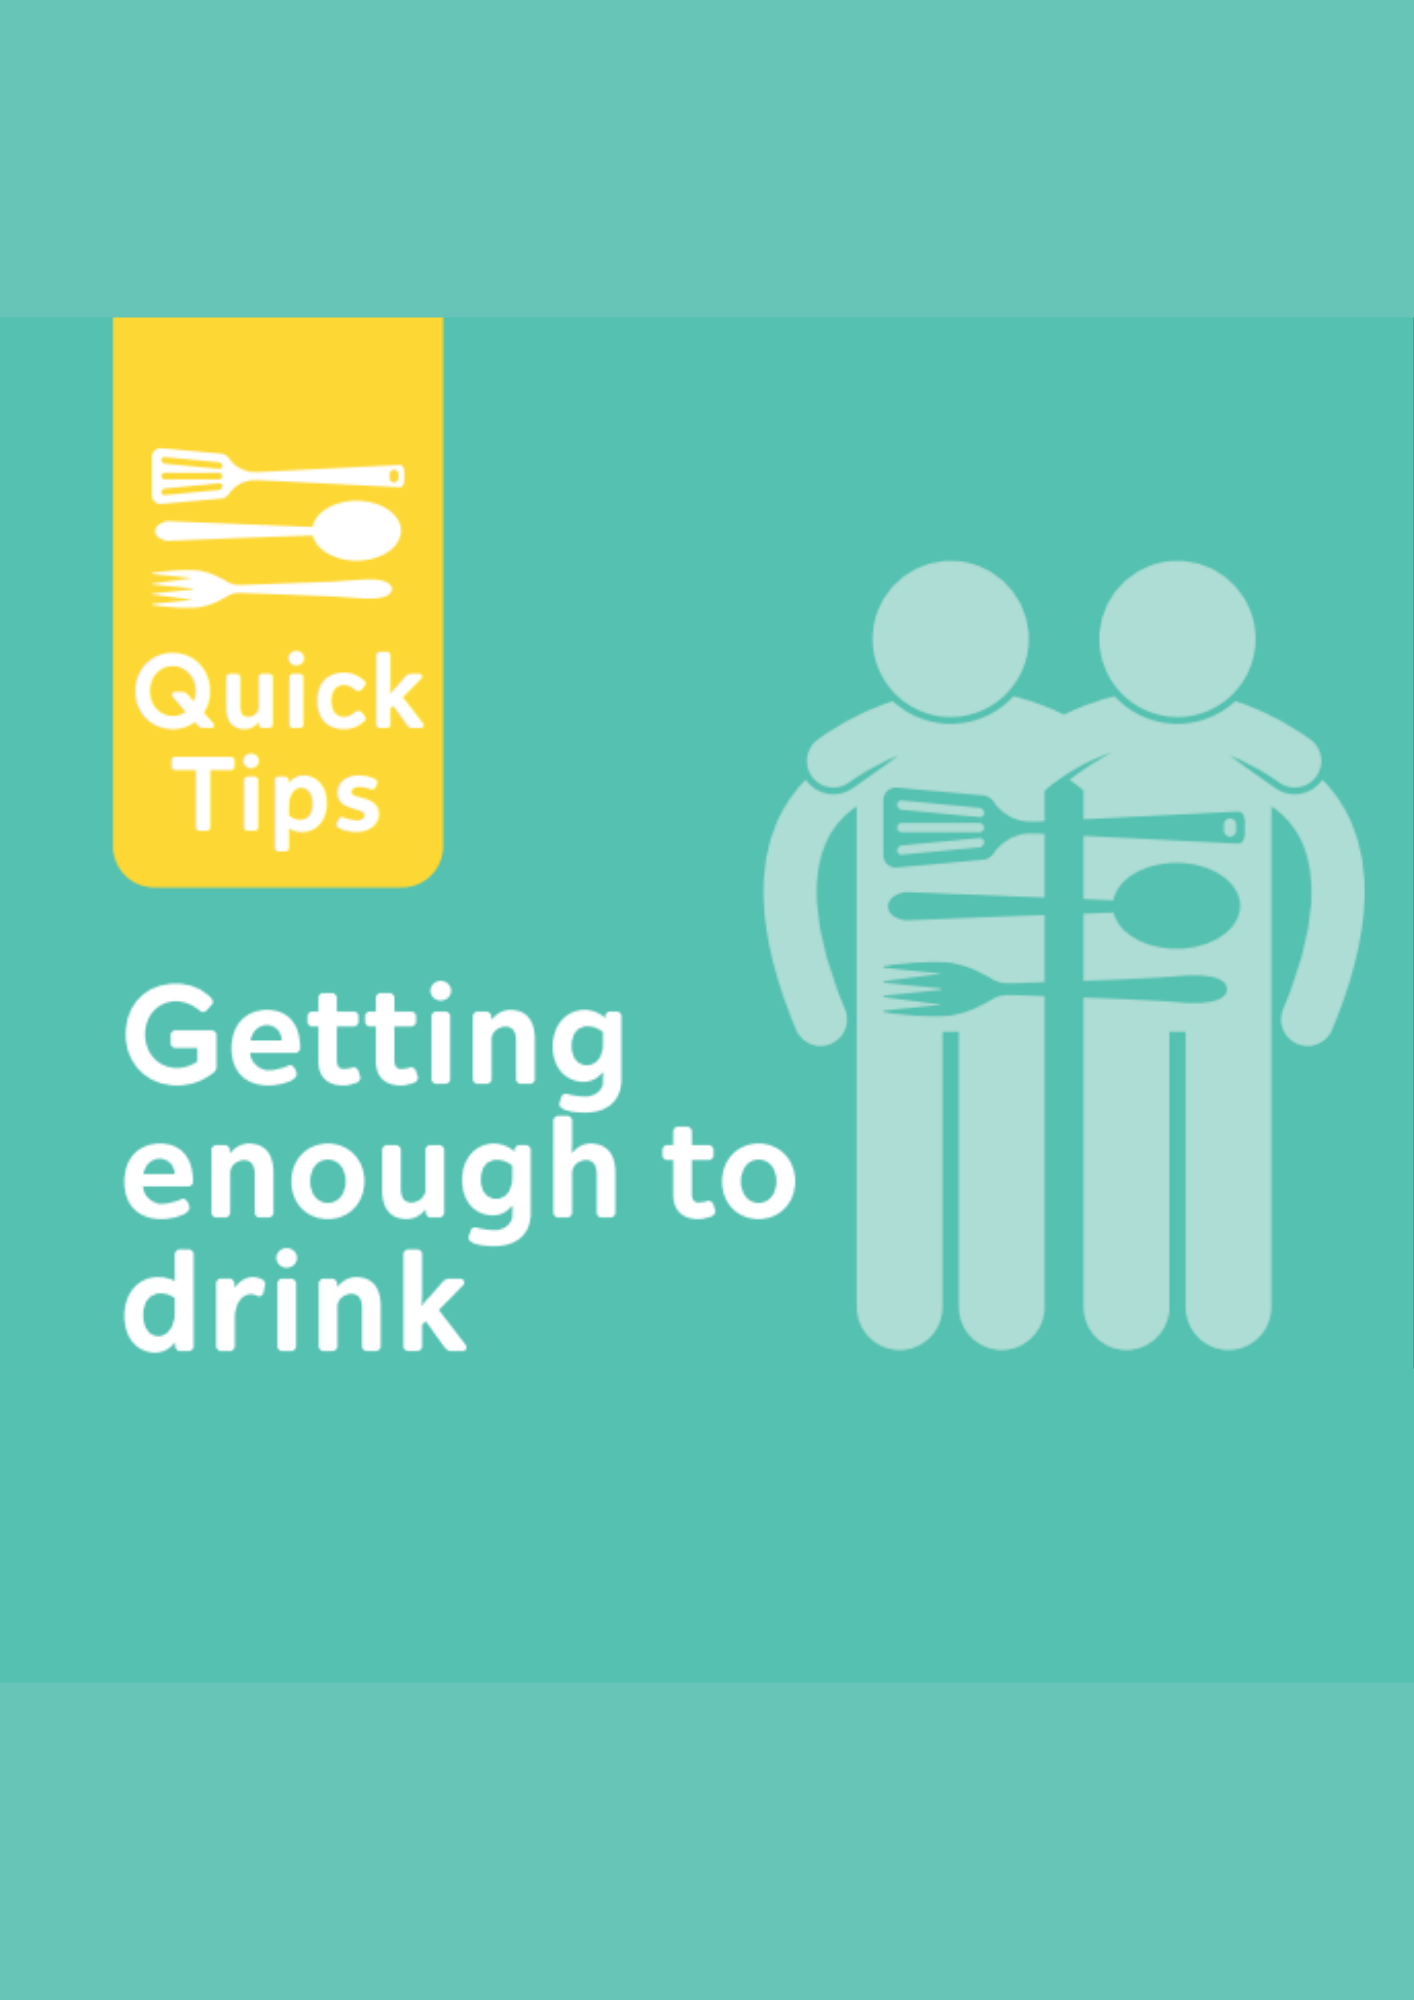 Getting enough to drink Quick tips